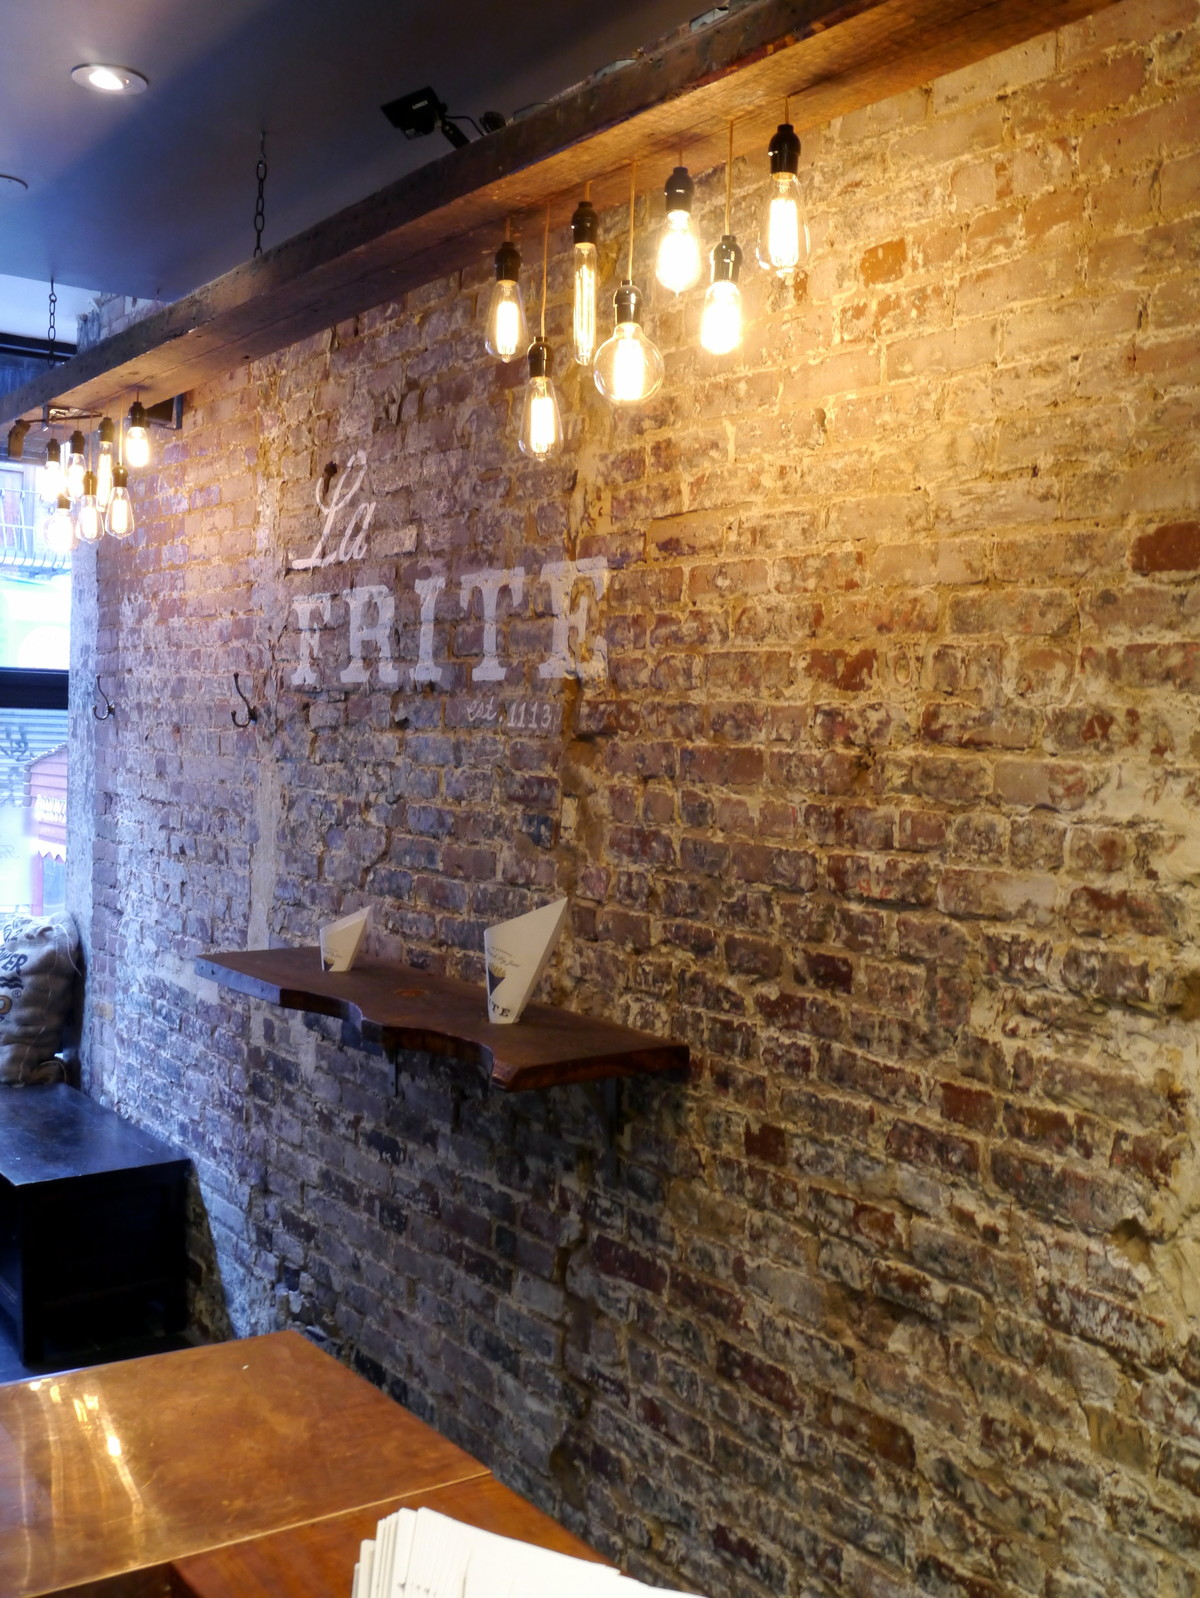 Interior Brick Walls Cafe Design Ideas With Wood And Exposed Brick Google